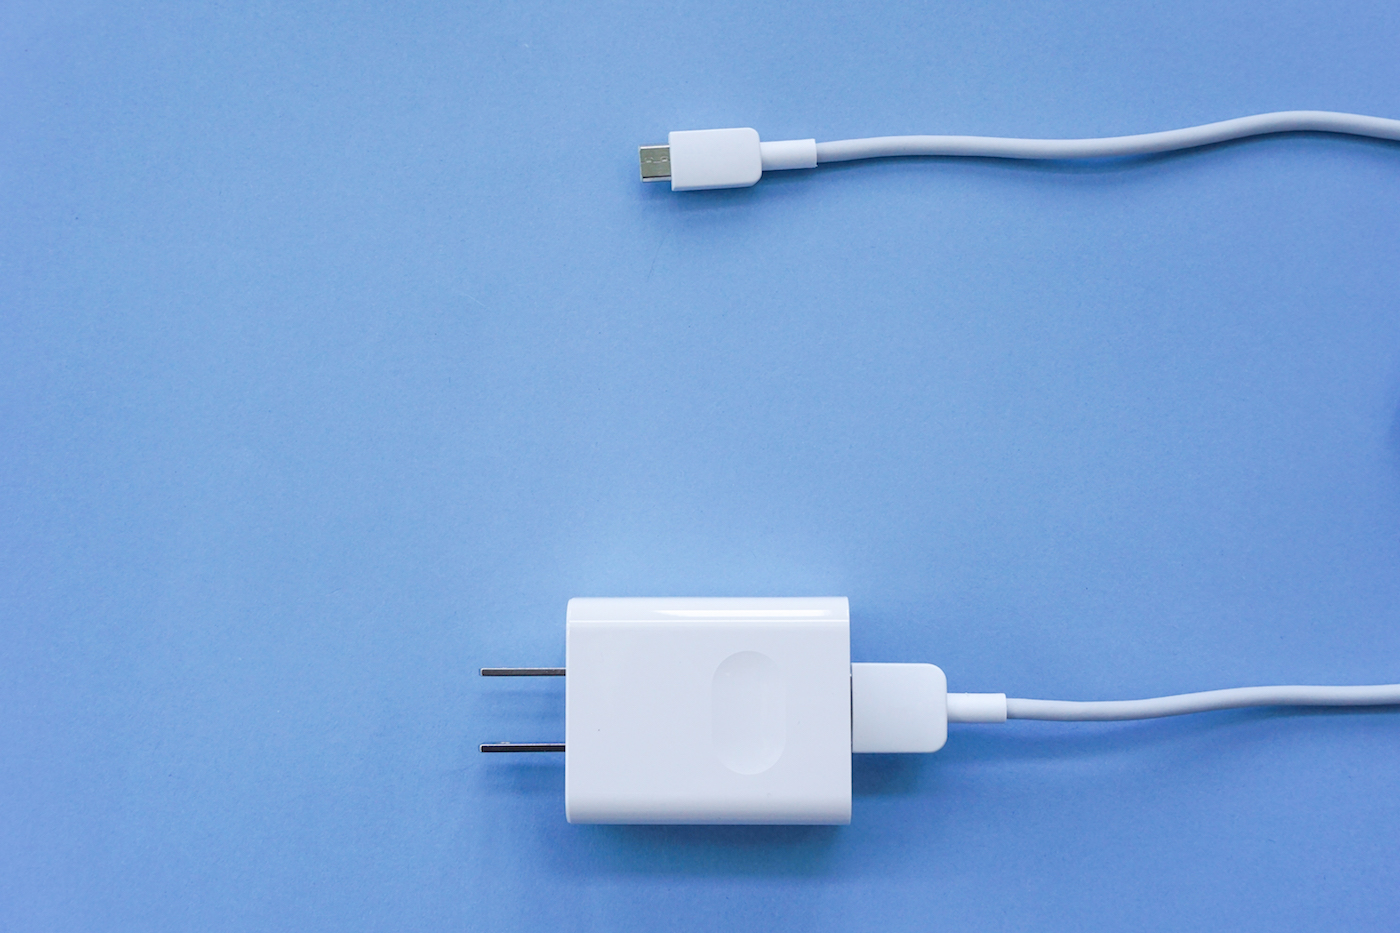 white phone charger on blue background